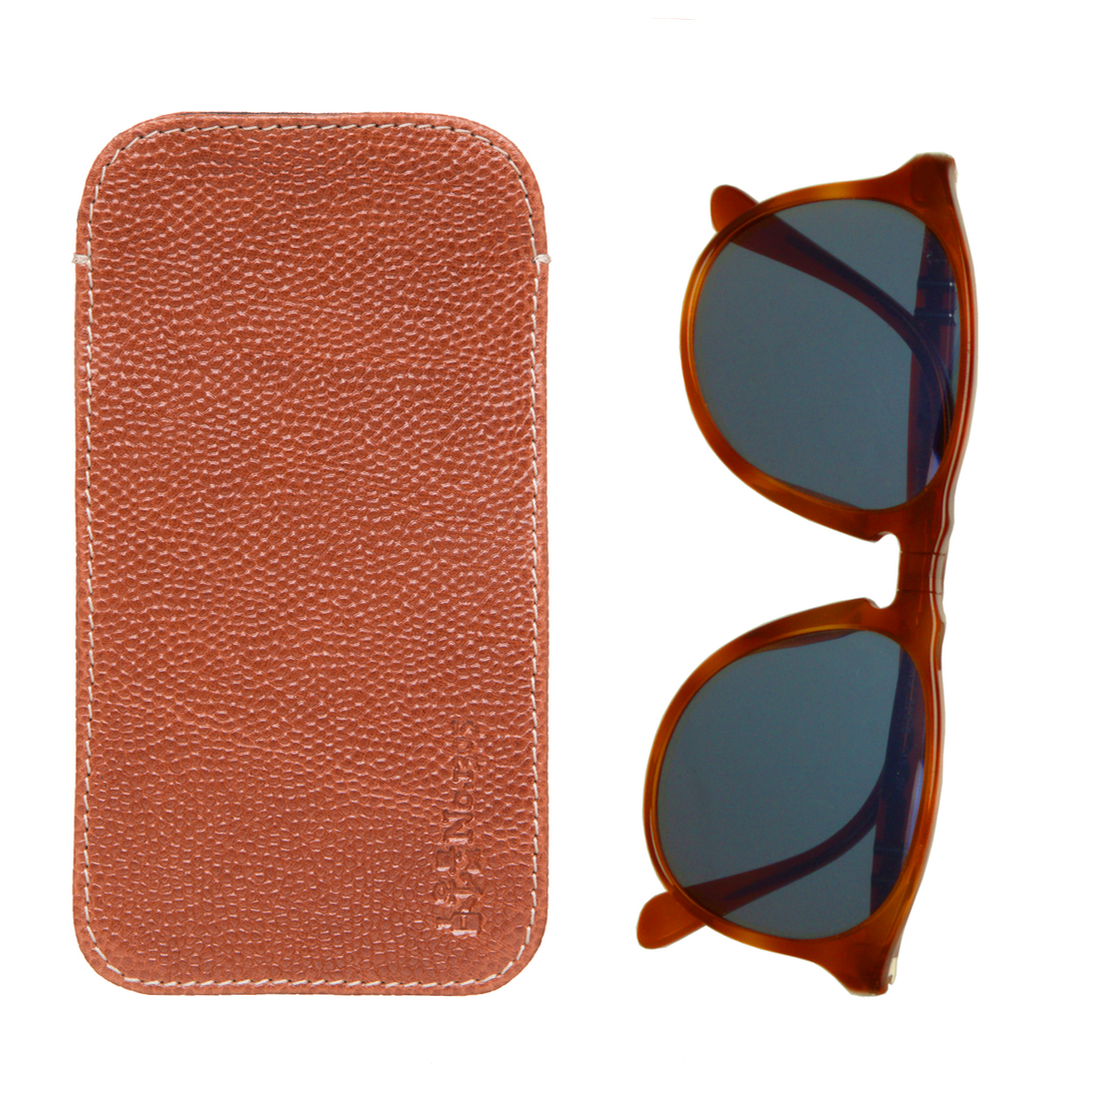 Spectacle Case - Camel